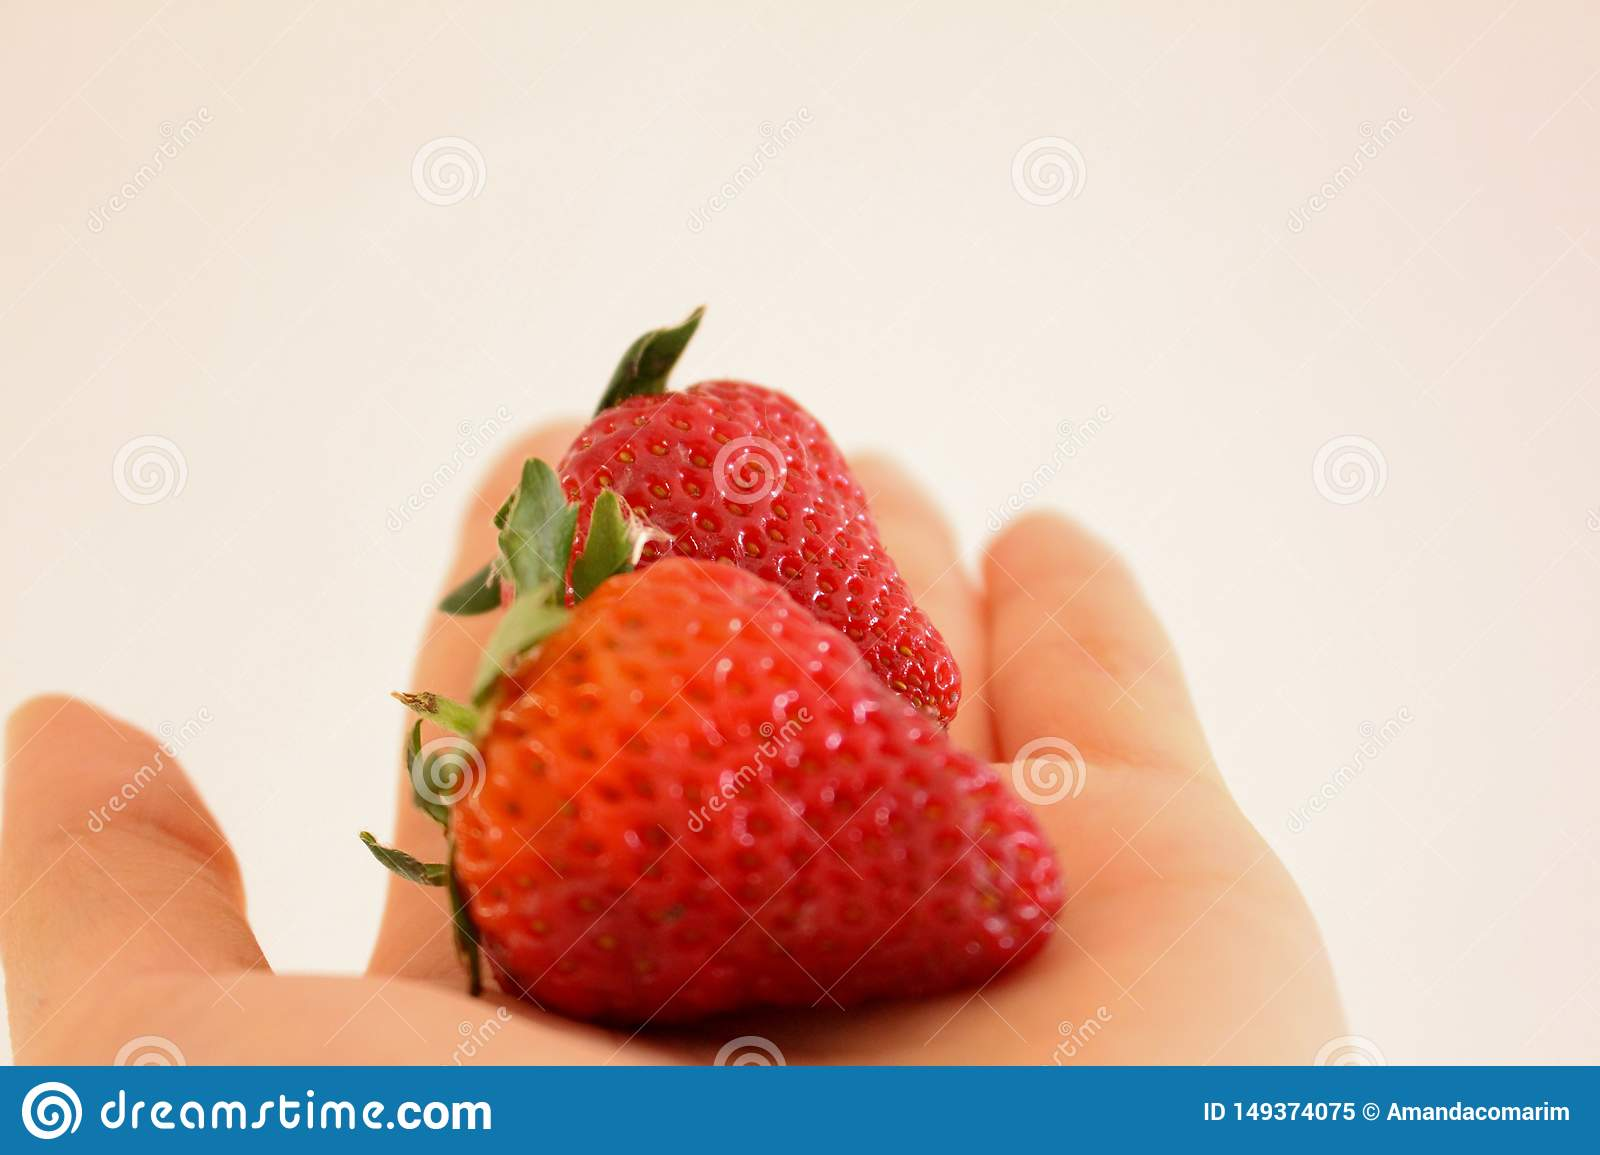 Fraises m?res ? disposition